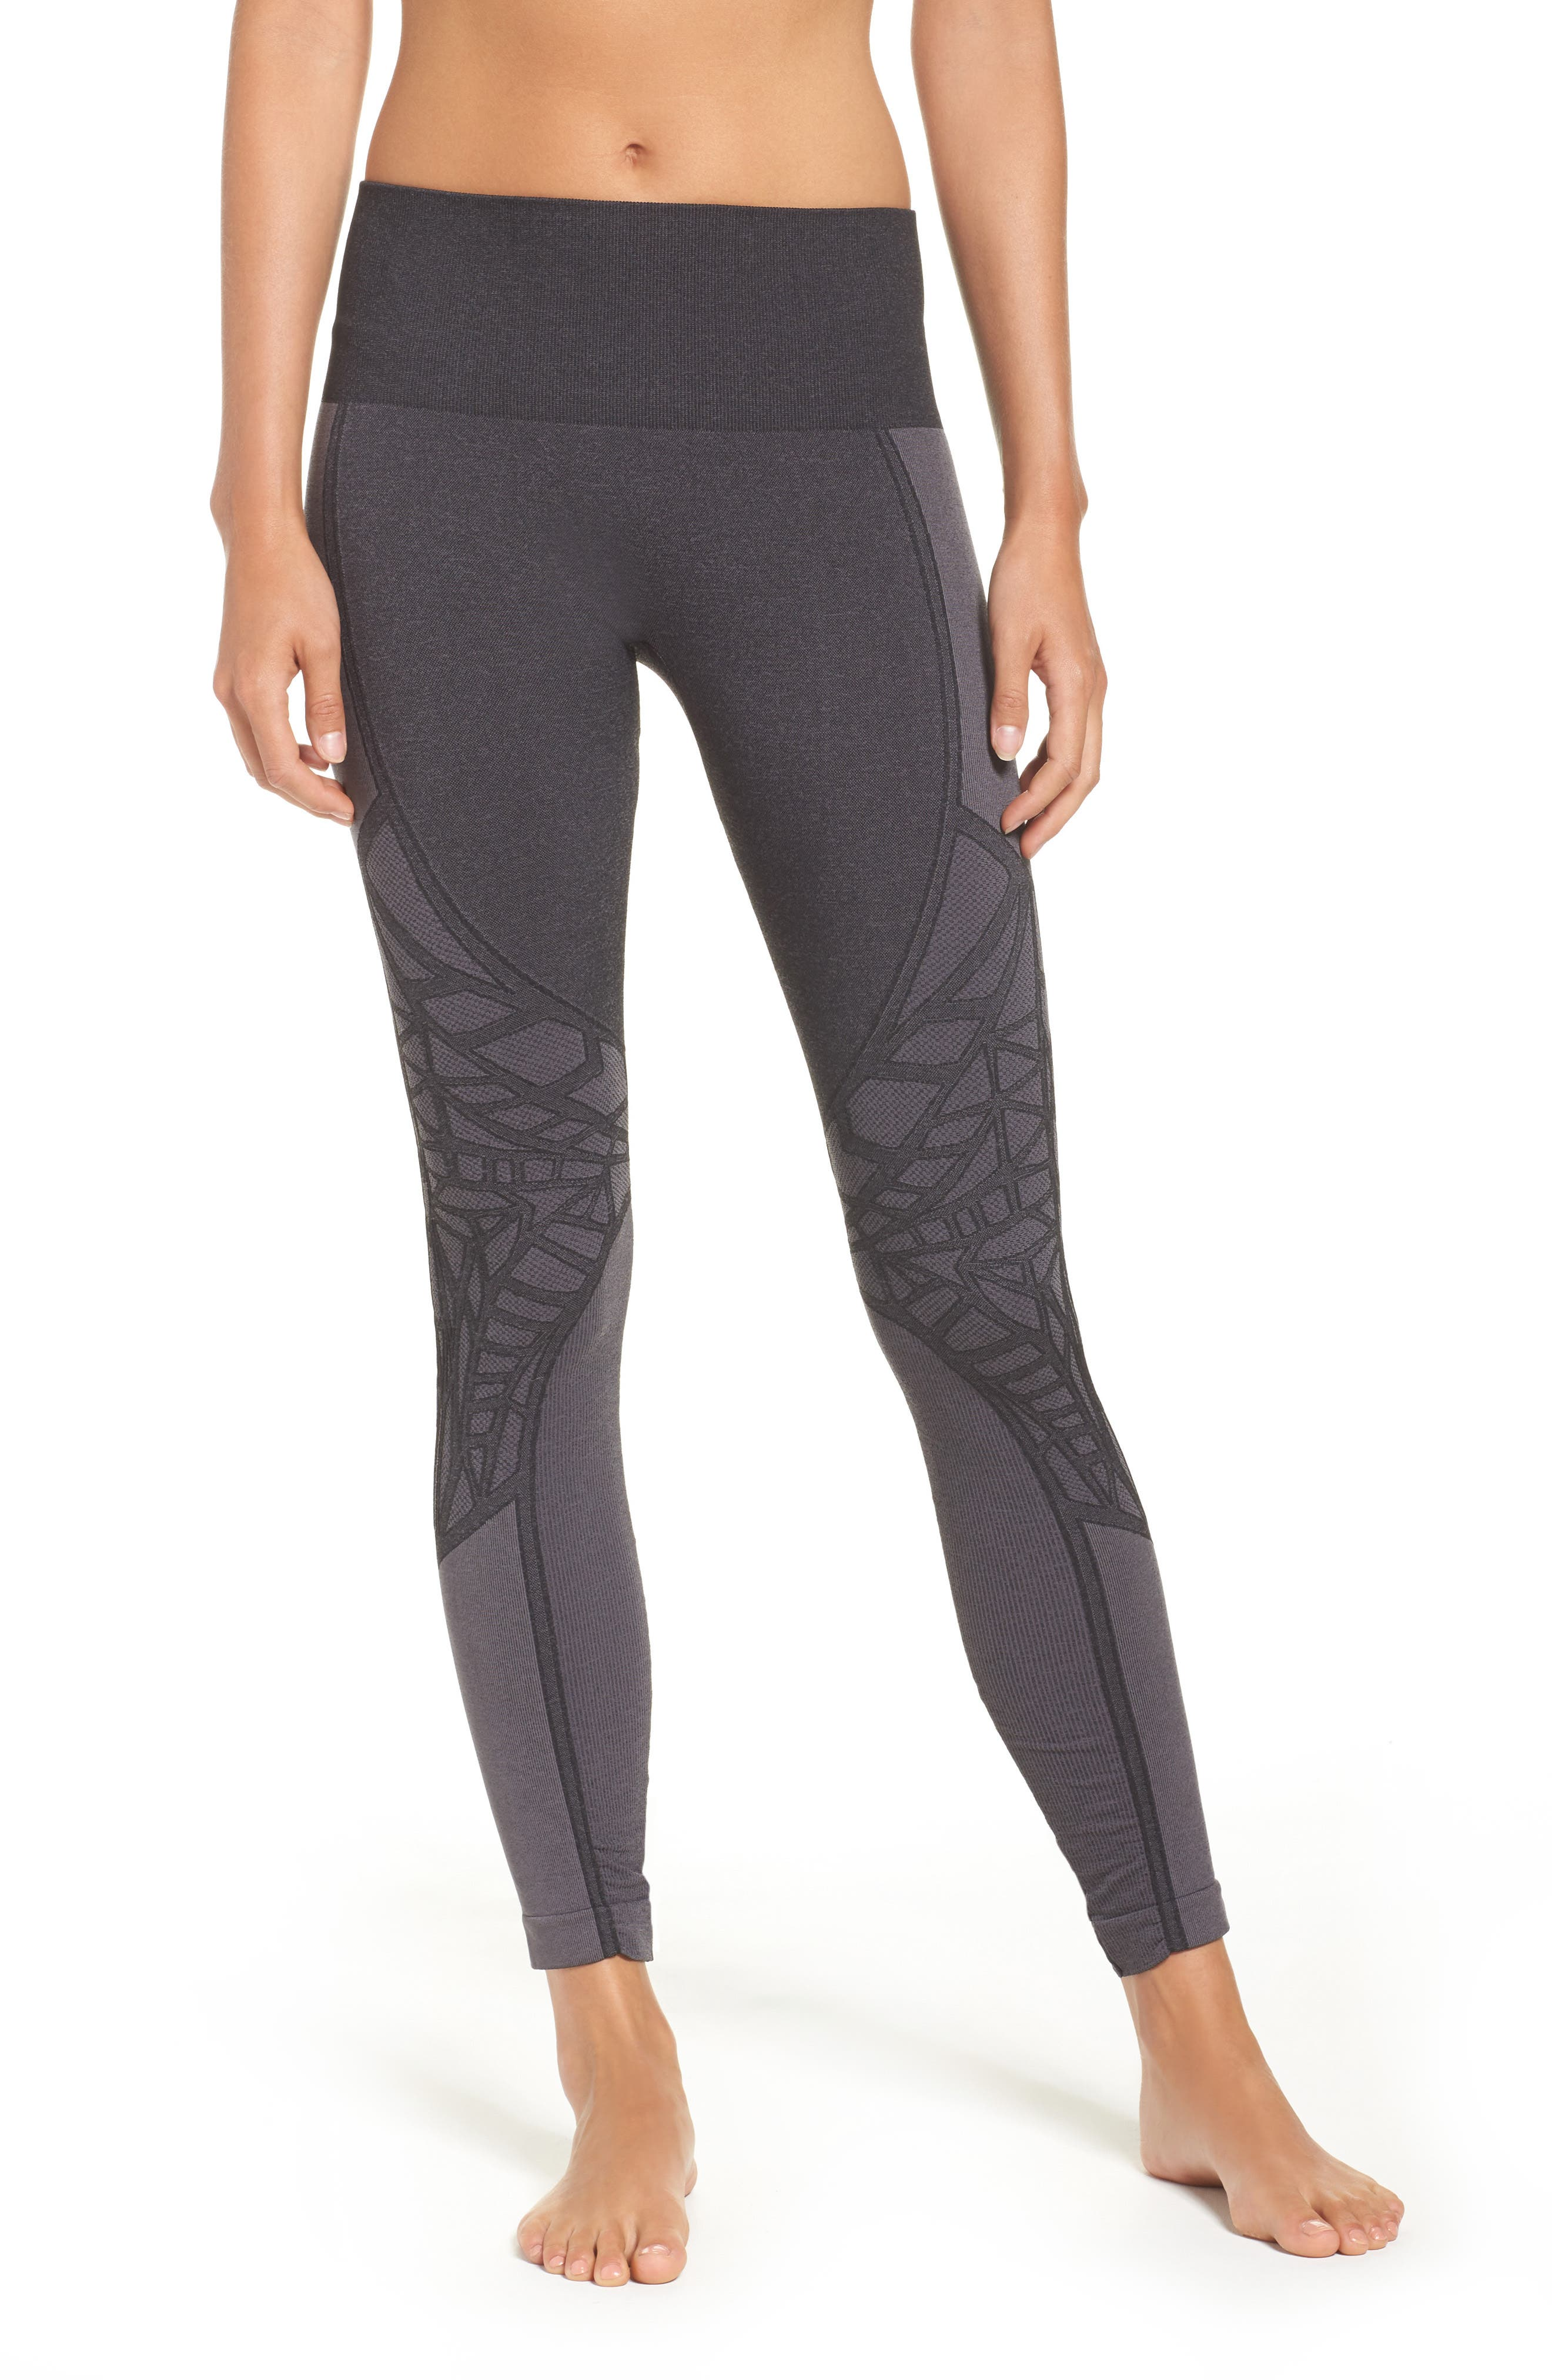 Revolution Leggings,                             Main thumbnail 1, color,                             Excalibur And Black